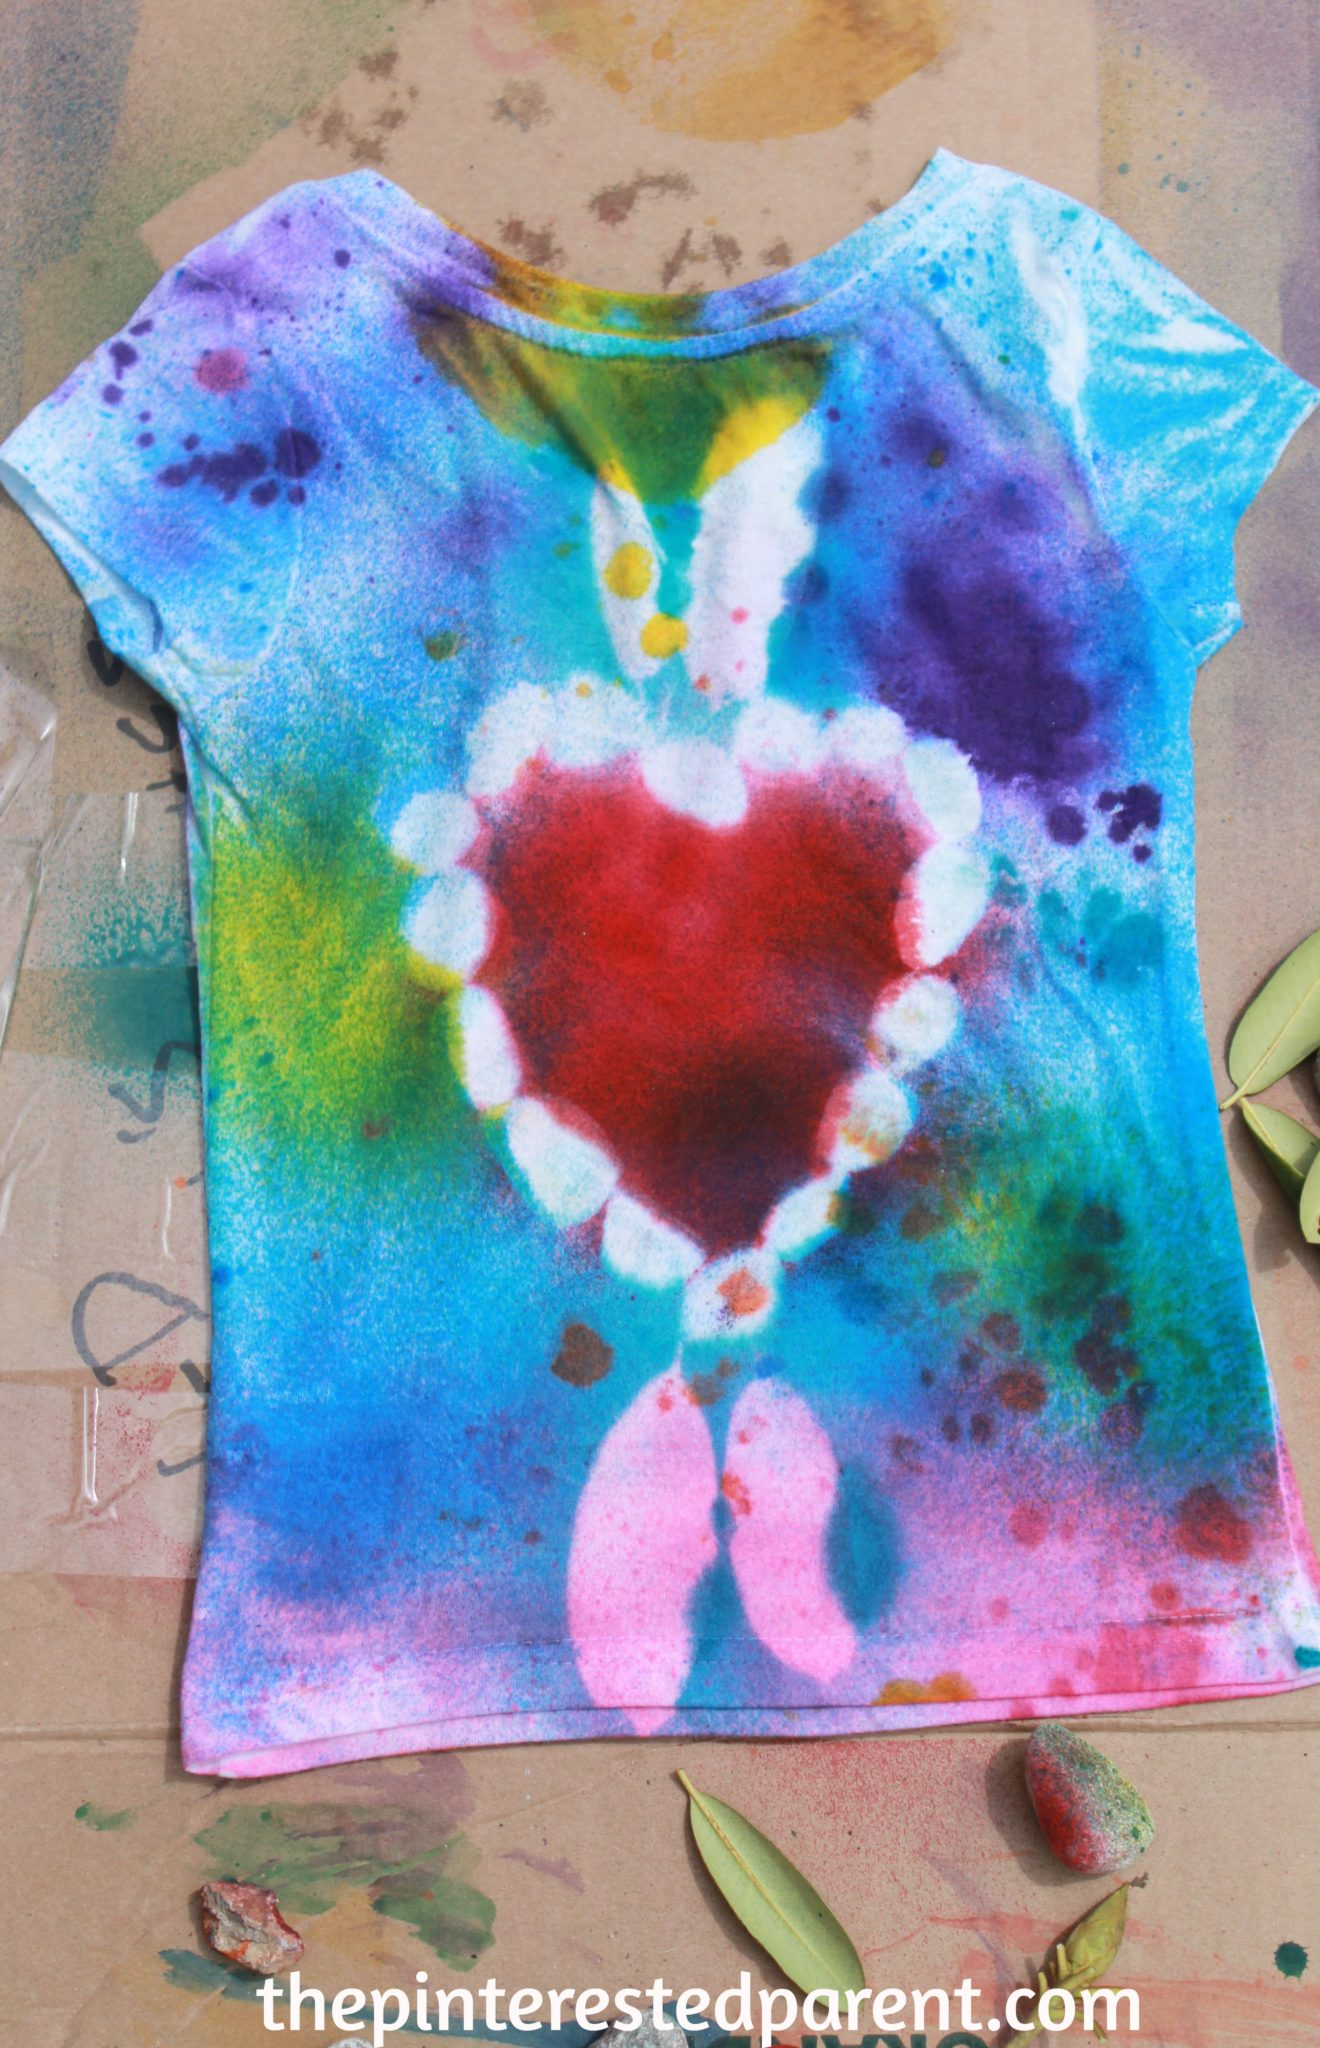 Nature Resist Tie Dye Shirts The Pinterested Parent